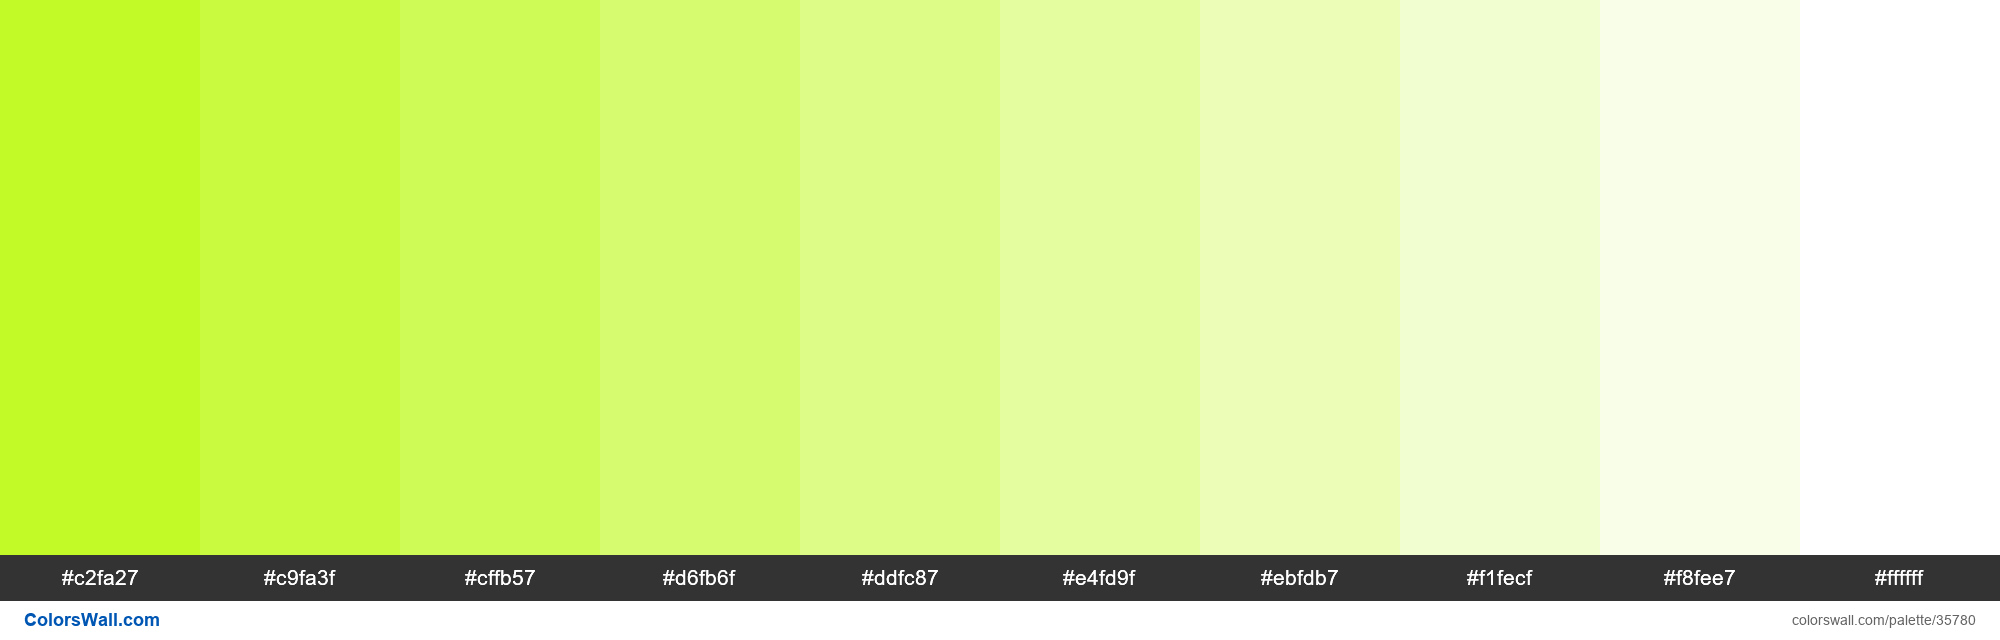 Tints XKCD Color yellowgreen #bbf90f hex - #35780